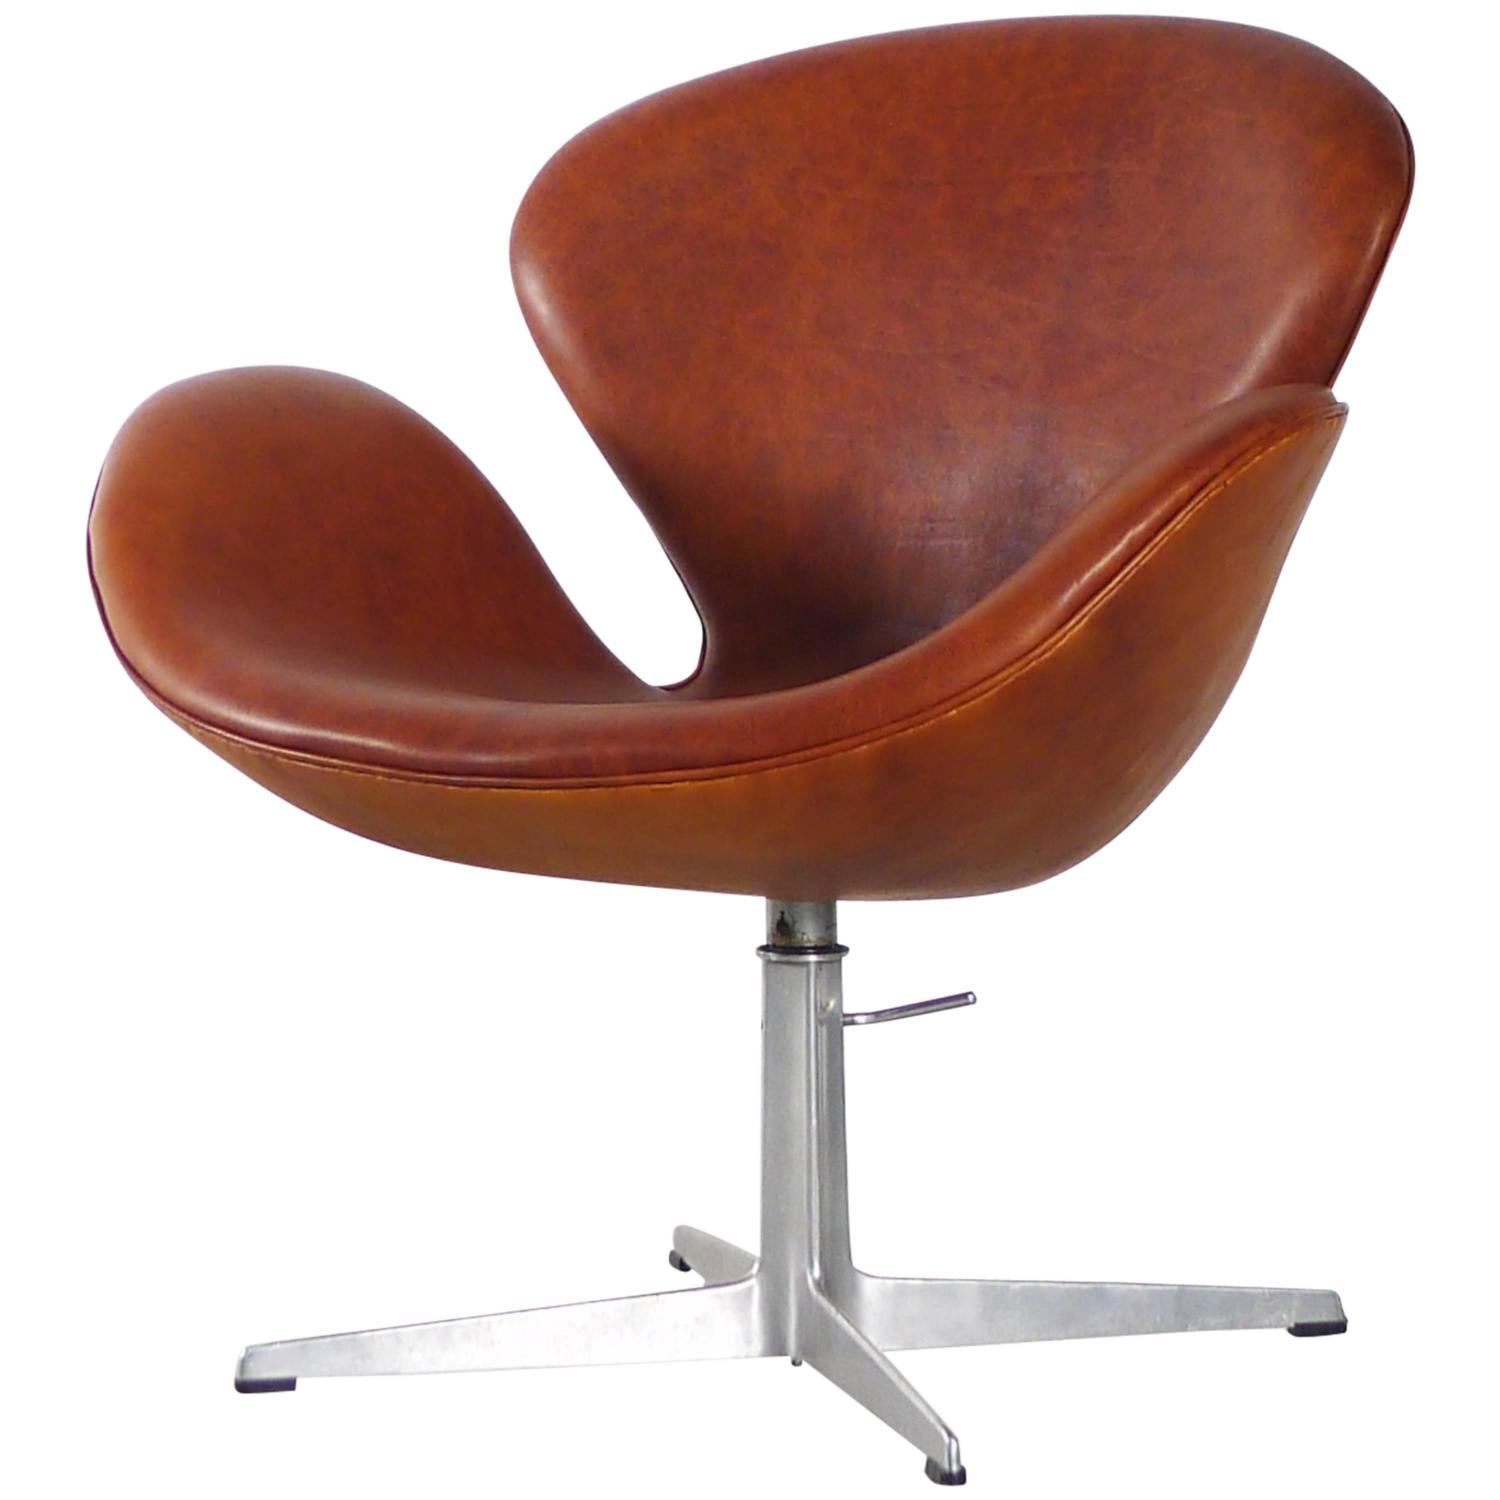 Arne jacobsen leather swan chair for sale at 1stdibs for Swan chairs for sale